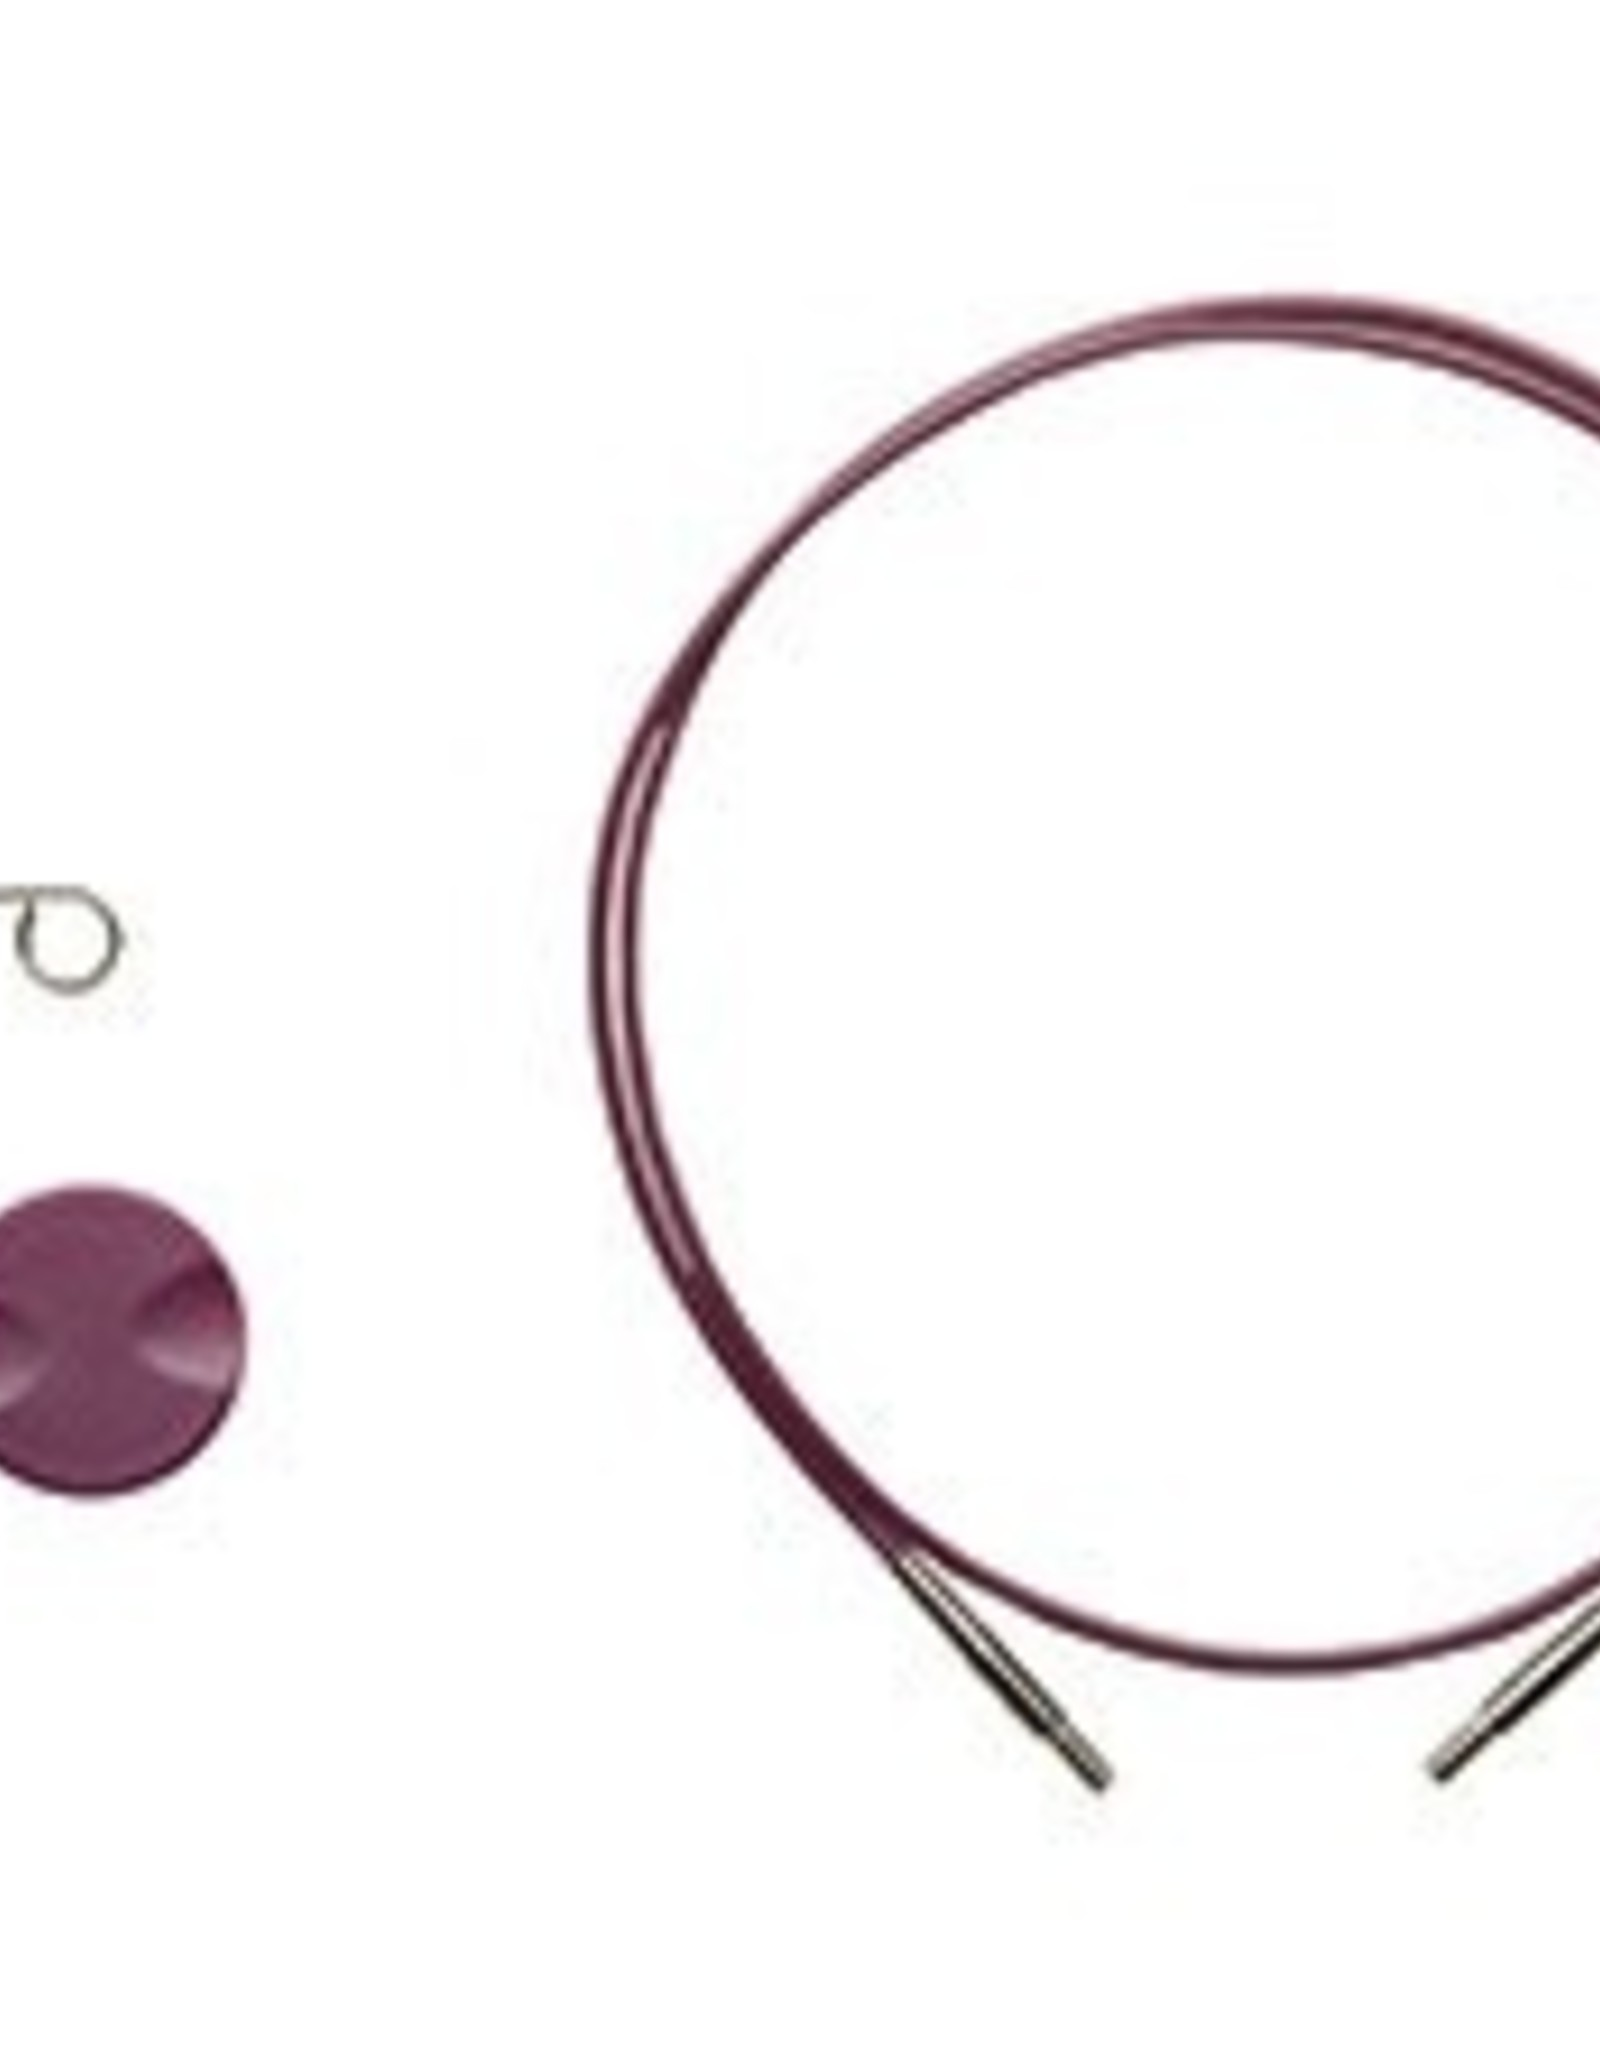 """Knitpicks 24"""", Options Interchangeable Circular Knitting Needle Cables - Purple single pack"""